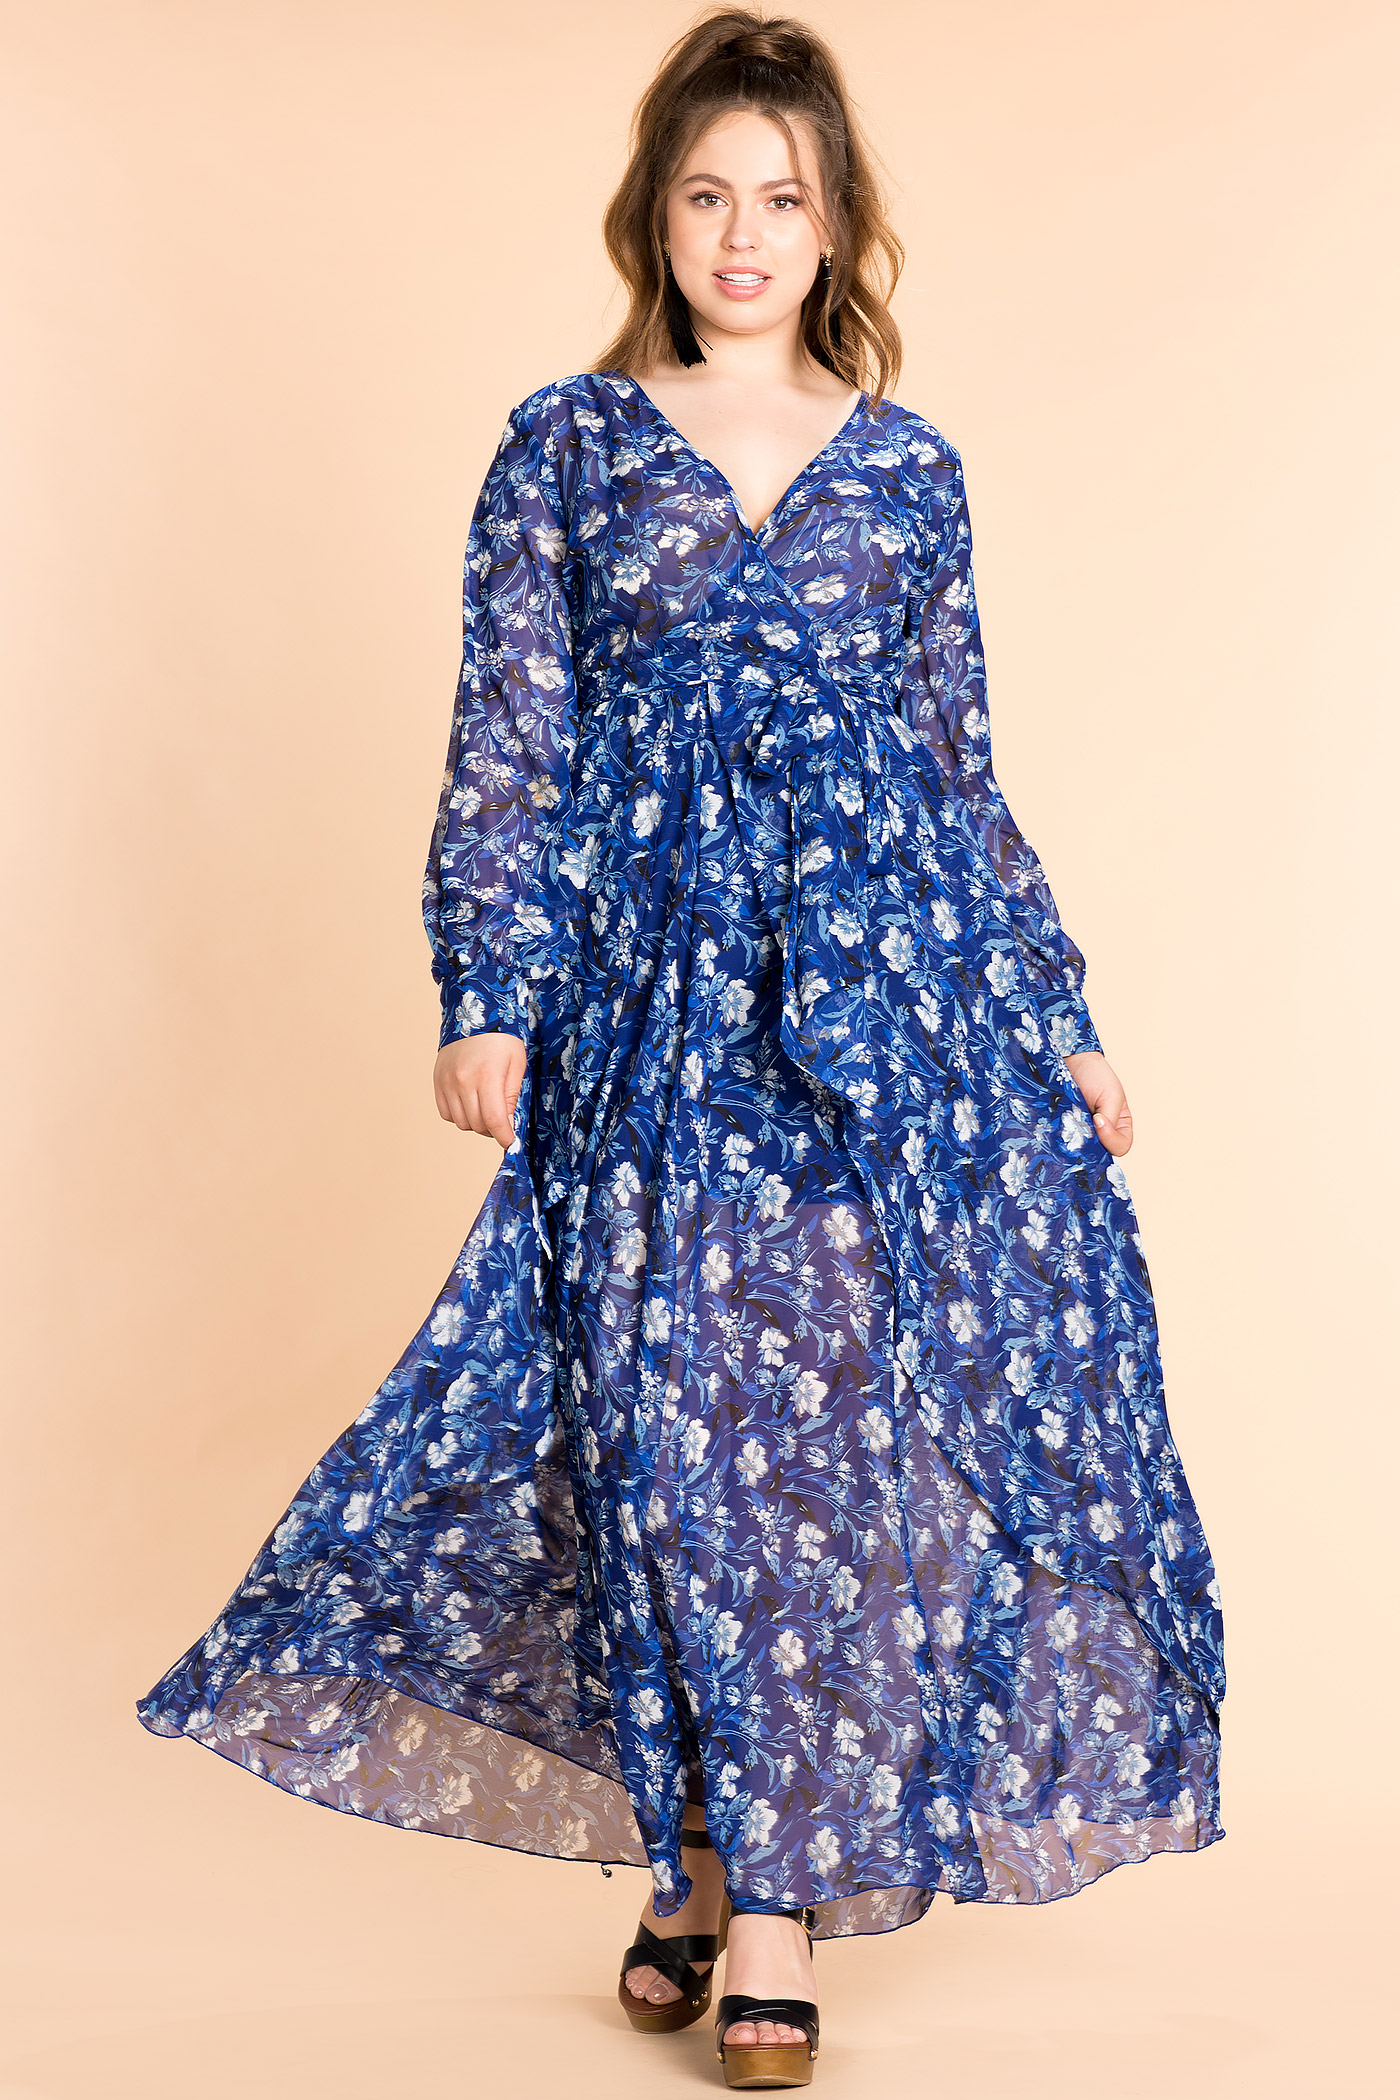 Plus Size Maxi Dresses For Spring Amp Summer